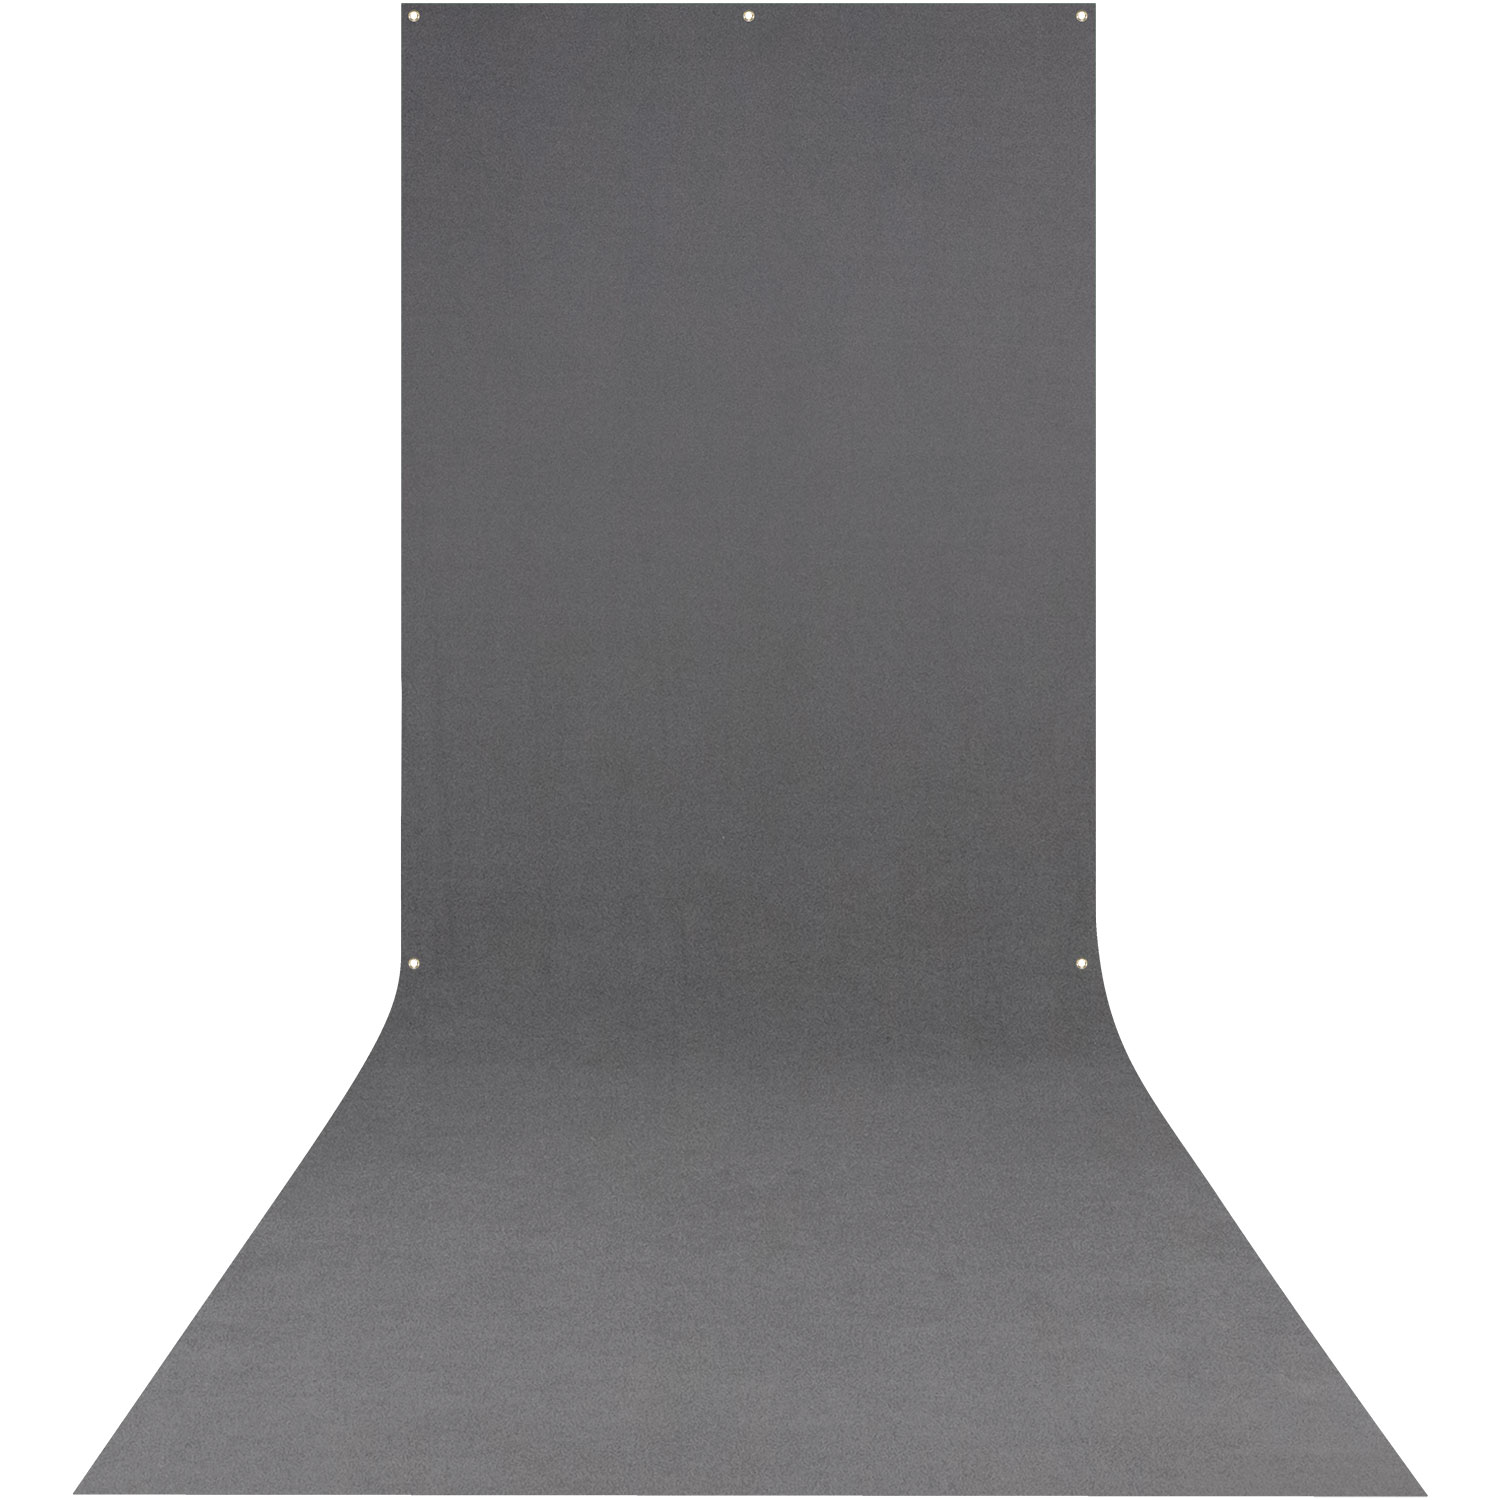 X-Drop Wrinkle-Resistant Backdrop - Neutral Gray Sweep (5' x 12')